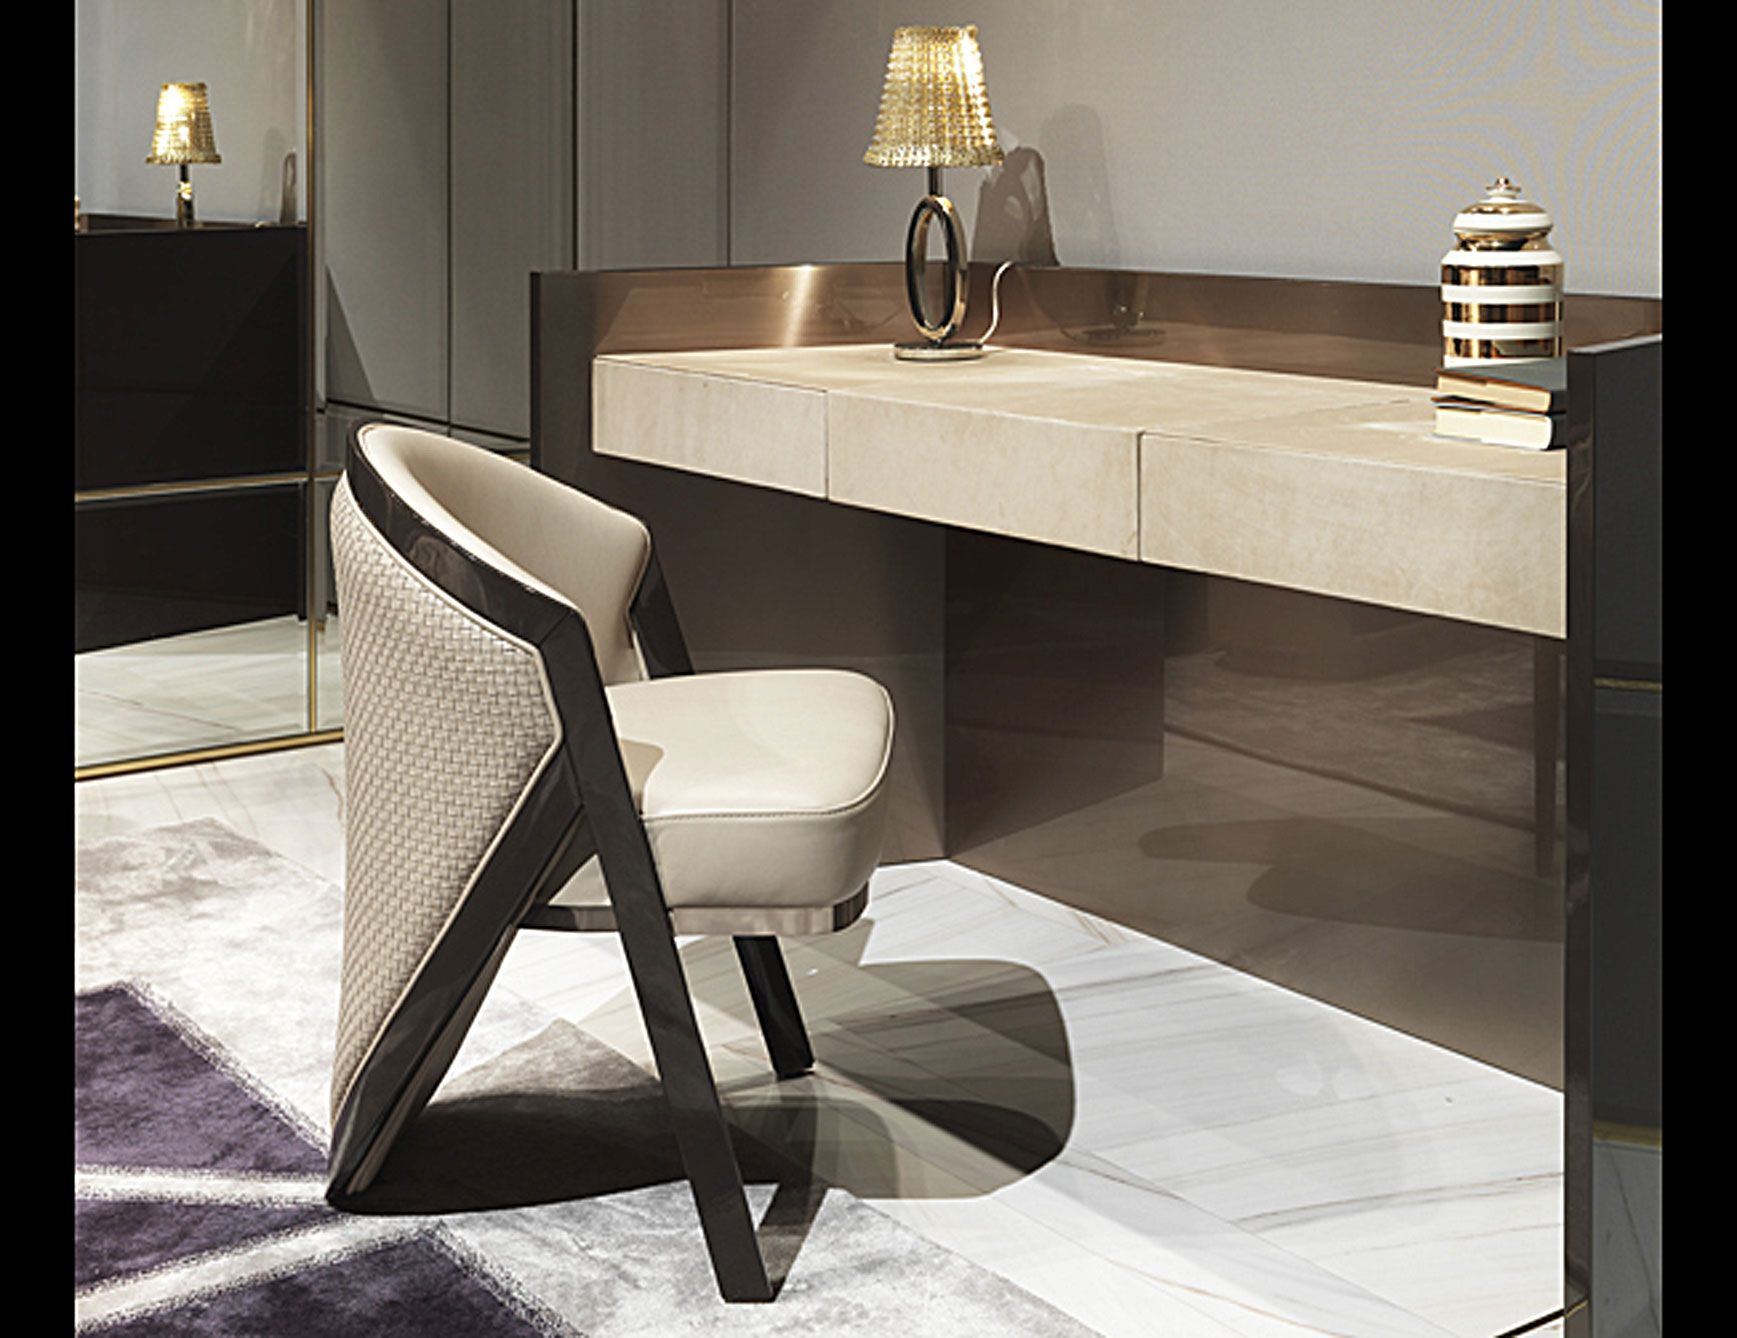 Mobili Betulla ~ Danny luxury italian make up desk shown in betulla upholstered